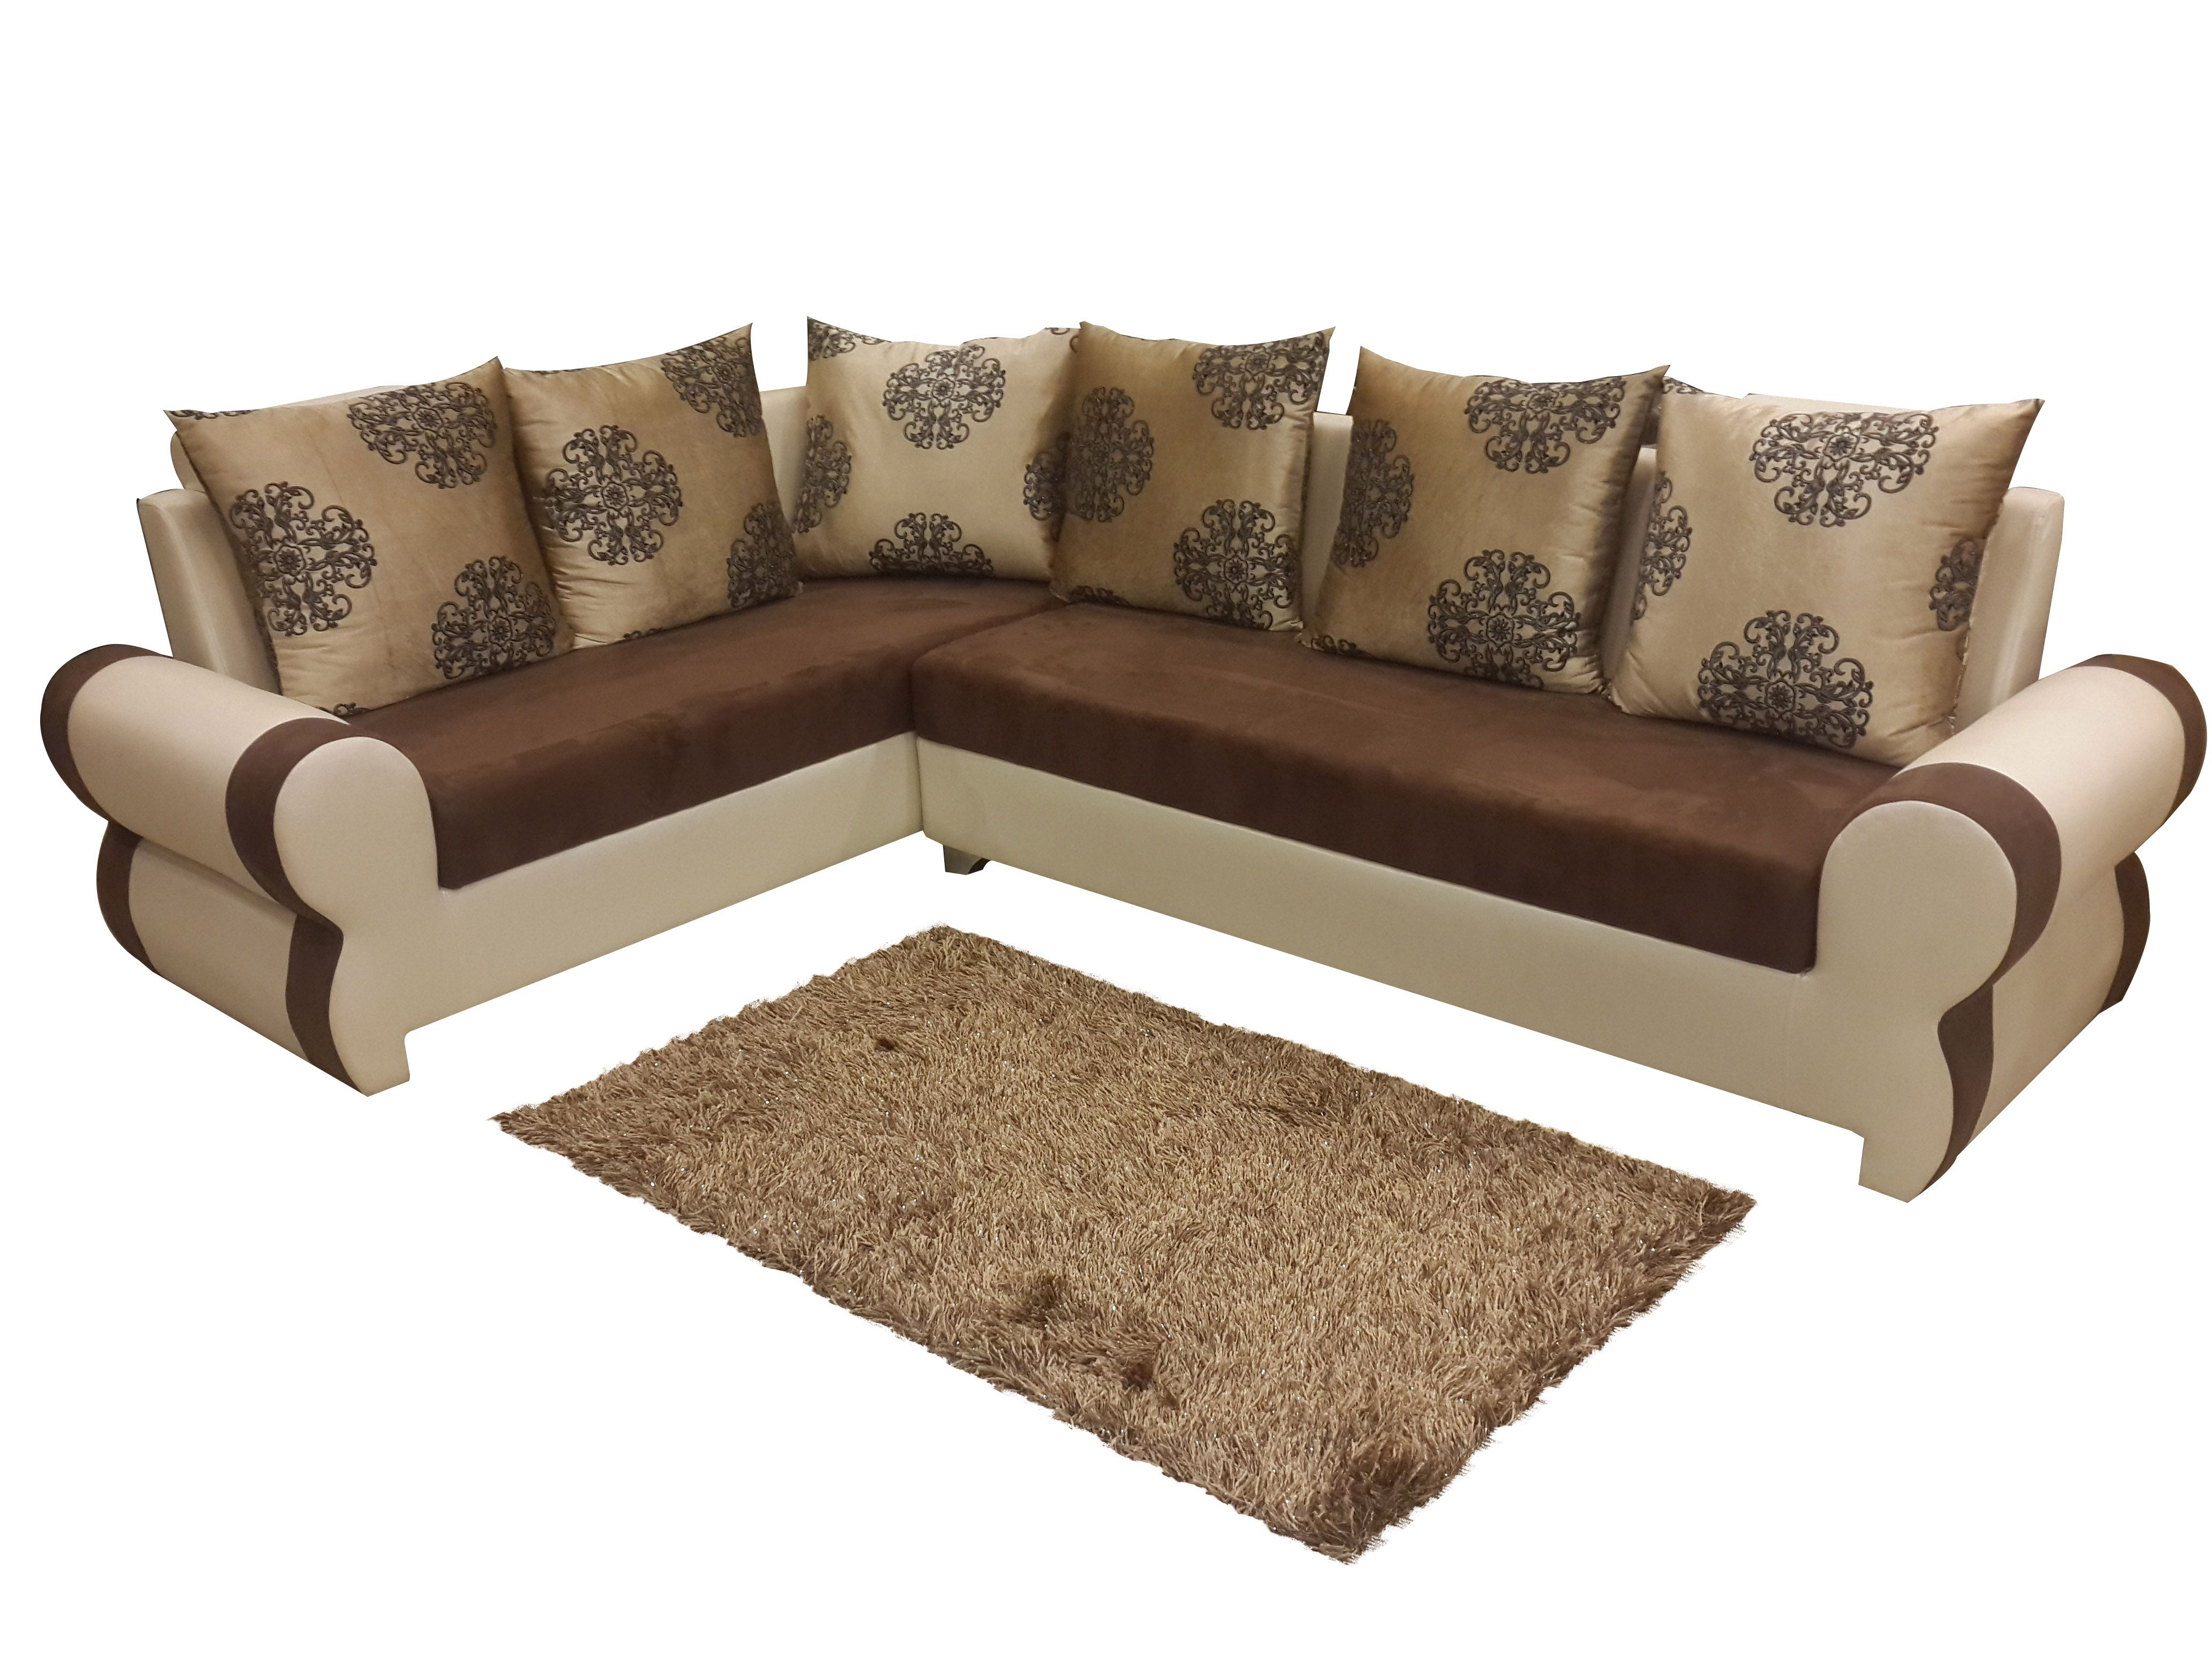 Buy online different kinds of modern sofa set designs in